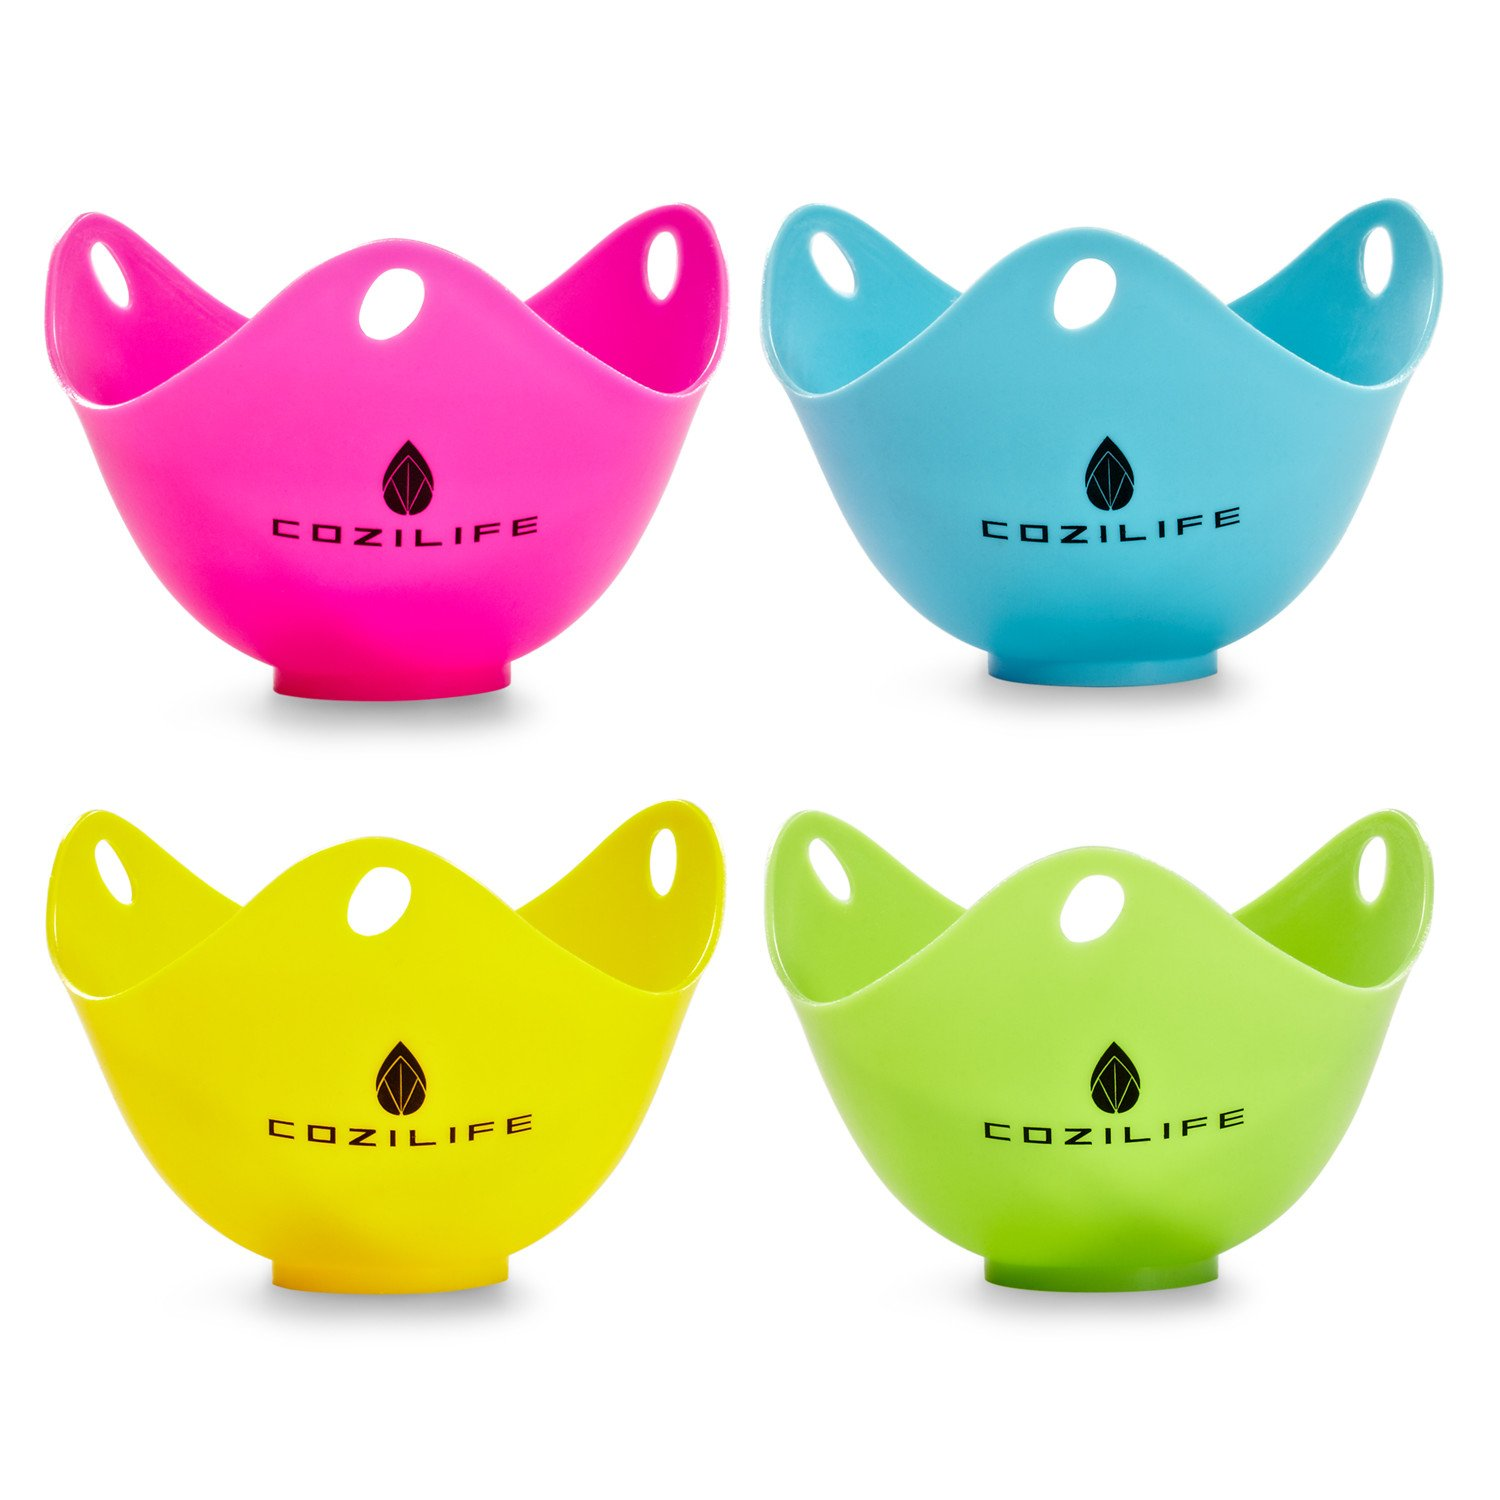 Egg Poacher - COZILIFE Silicone Egg Poaching Cups with Build-in Ring Standers, For Microwave or Stovetop Egg Cooking, Kraft Box Packing, BPA Free, Pack of 4 by COZILIFE